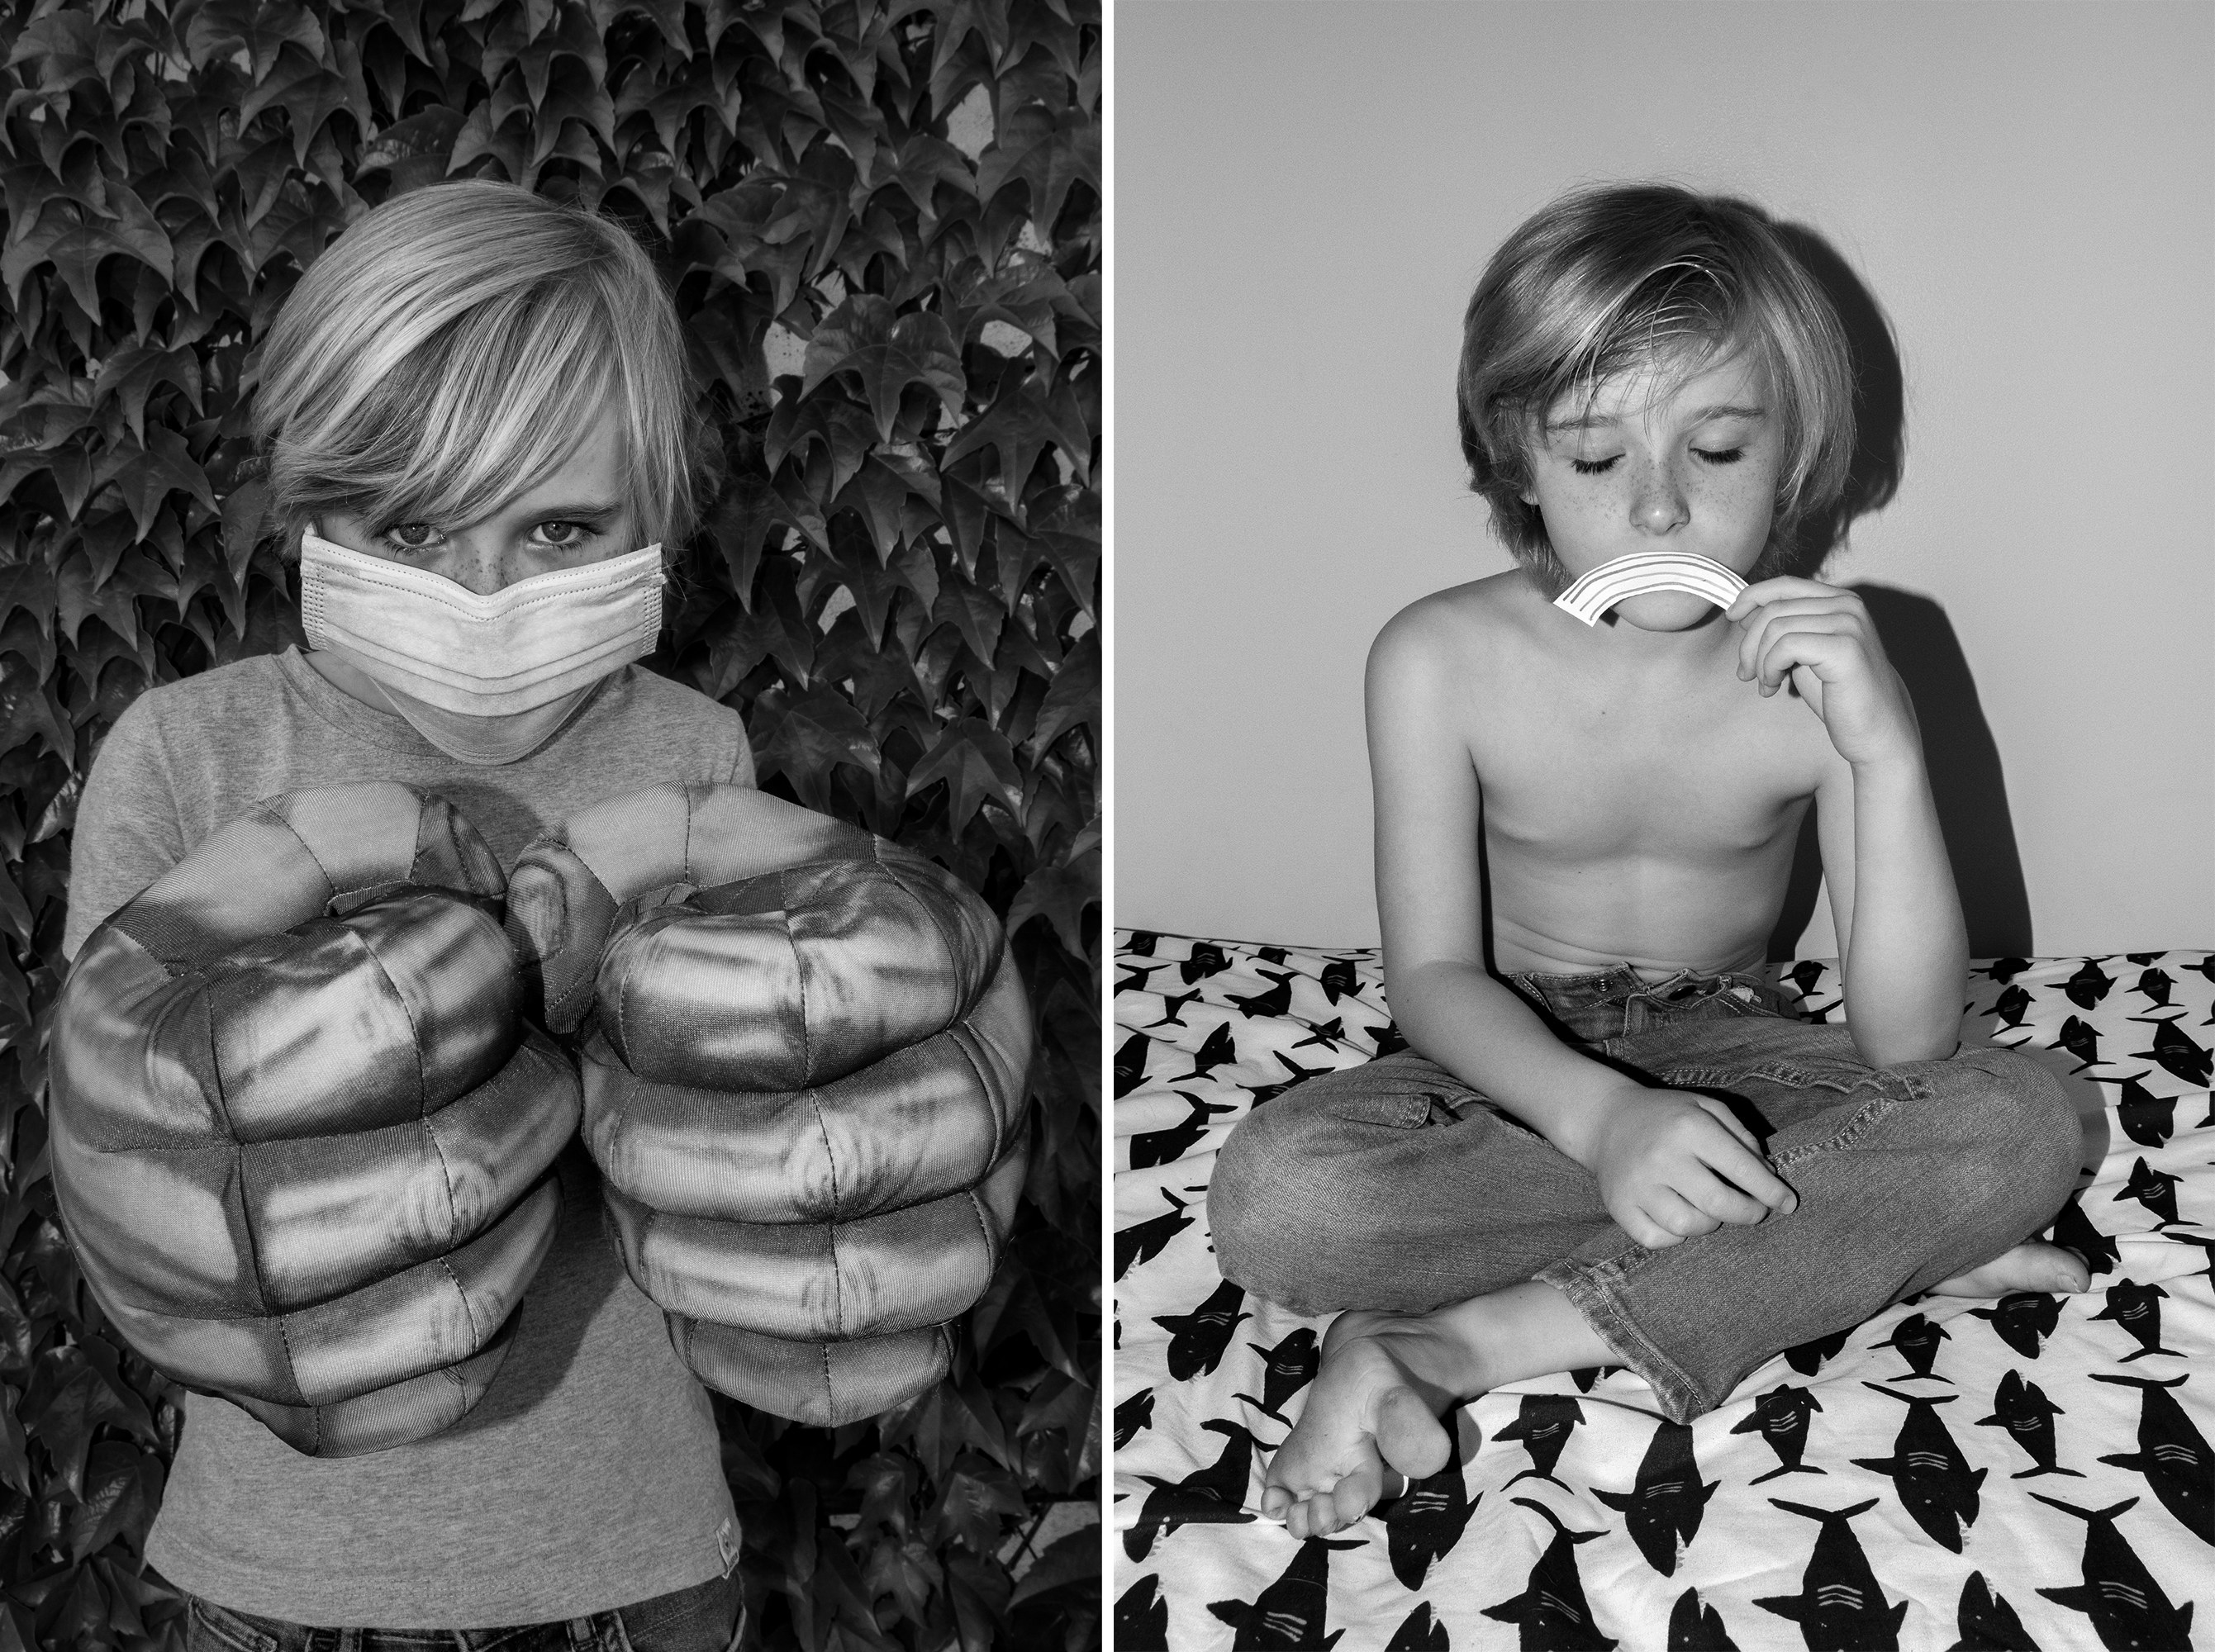 Two portraits of a child: on the left, he wears a paper face mask and holds Hulk hands; on the right, he holds a cutout rainbow to his face like a frown